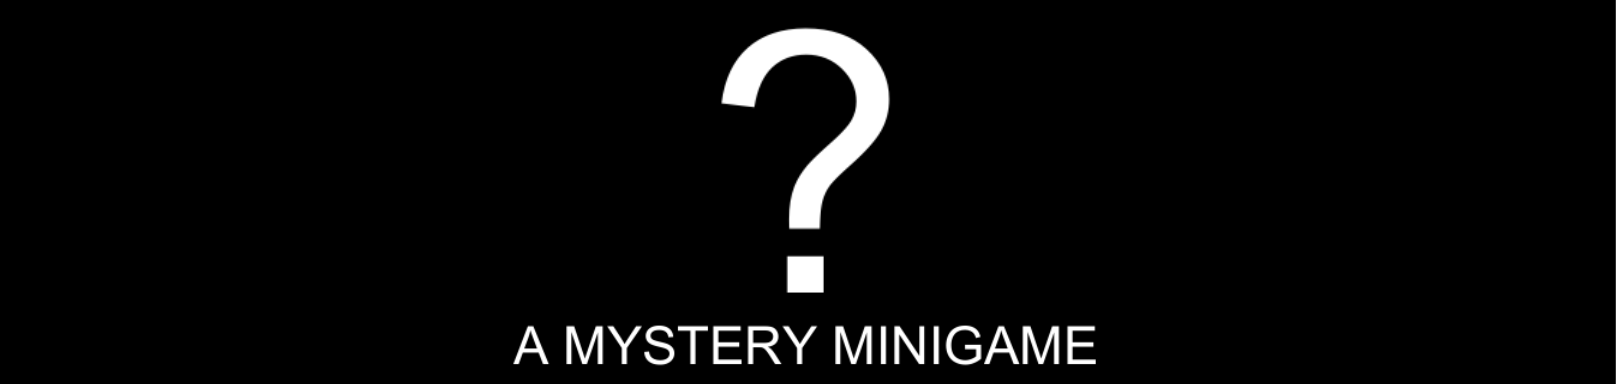 ? - A Mystery Minigame